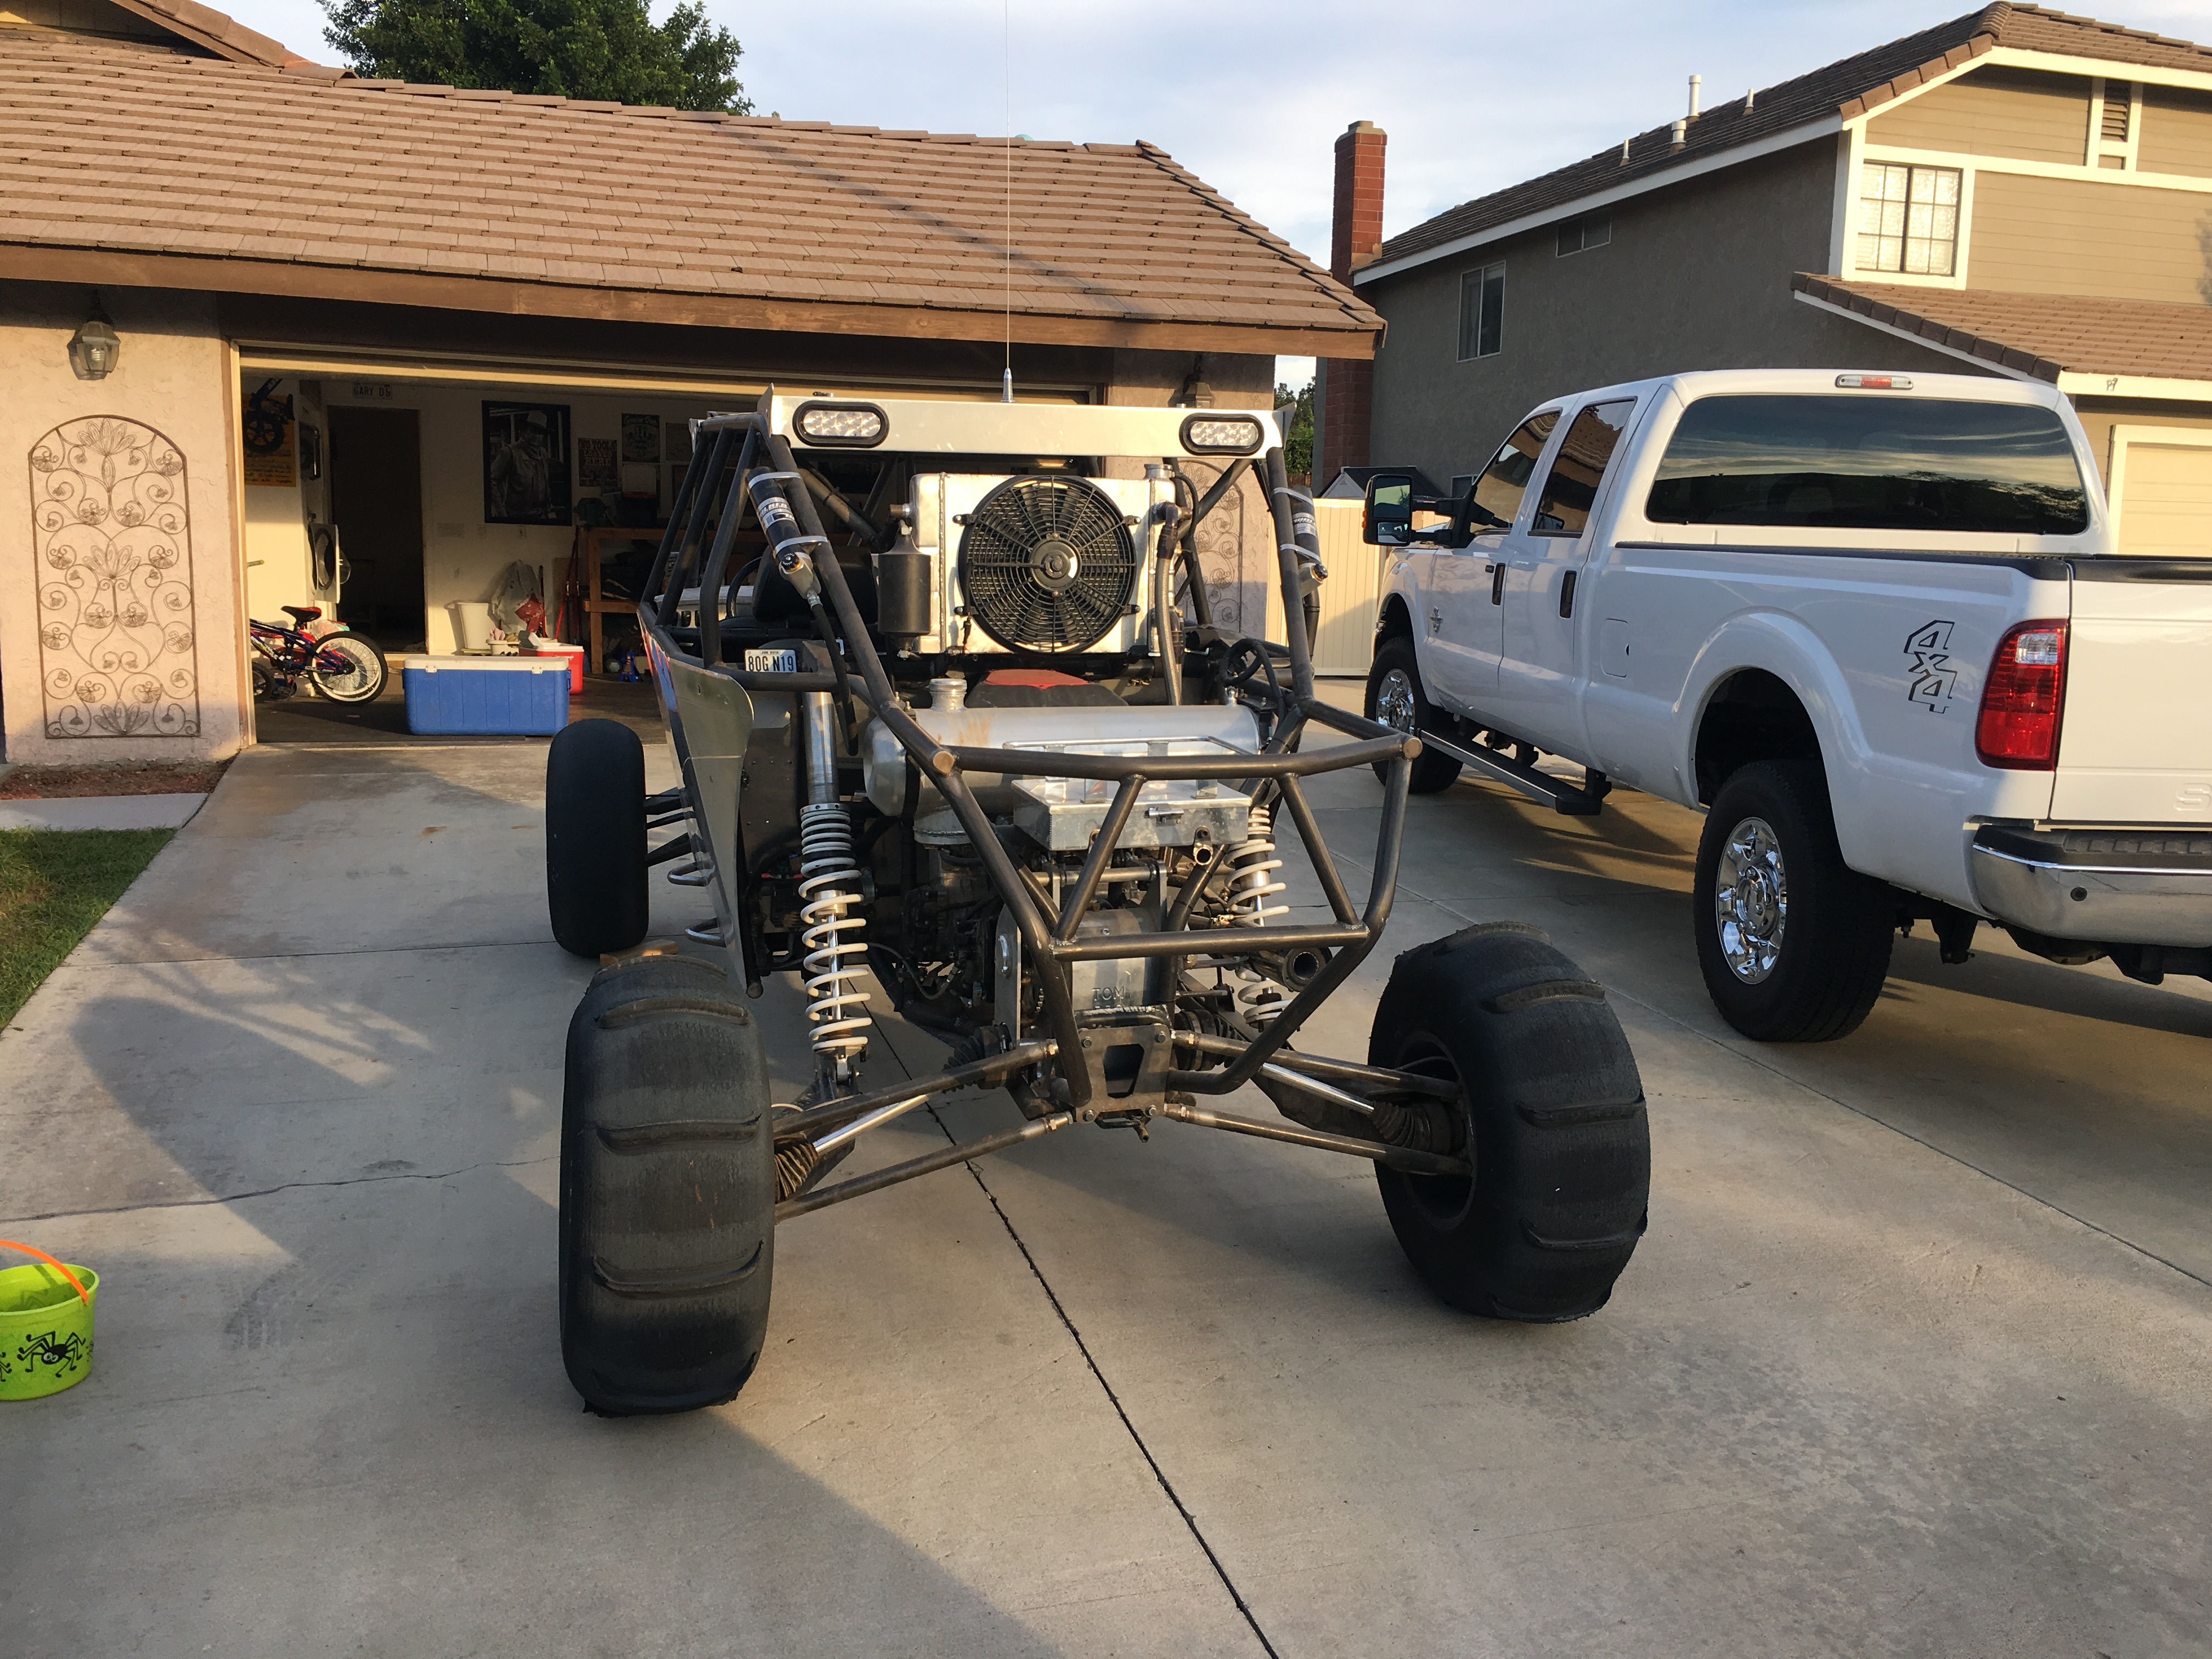 2015 full tube chassis 4seater RZR with a hayabusa - Side x Sides